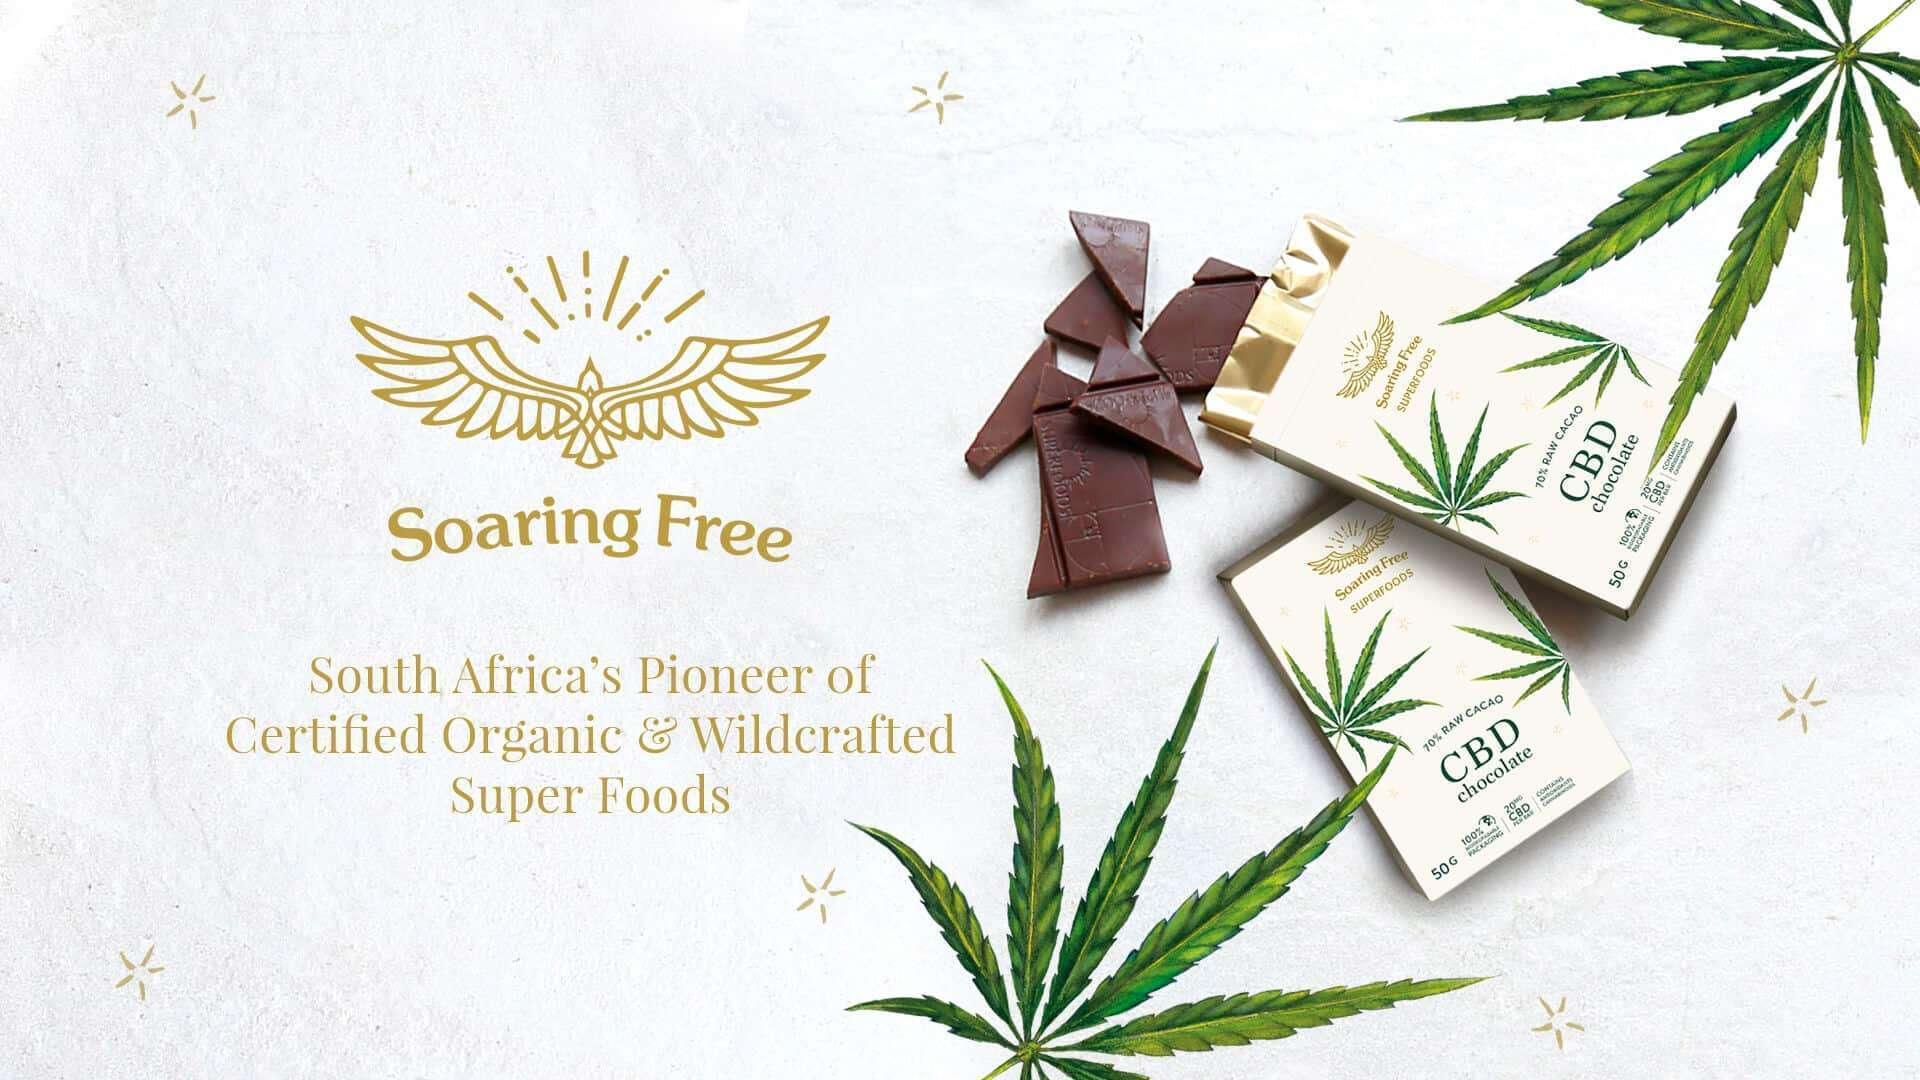 Get 30% off your first Soaring Free Superfoods order